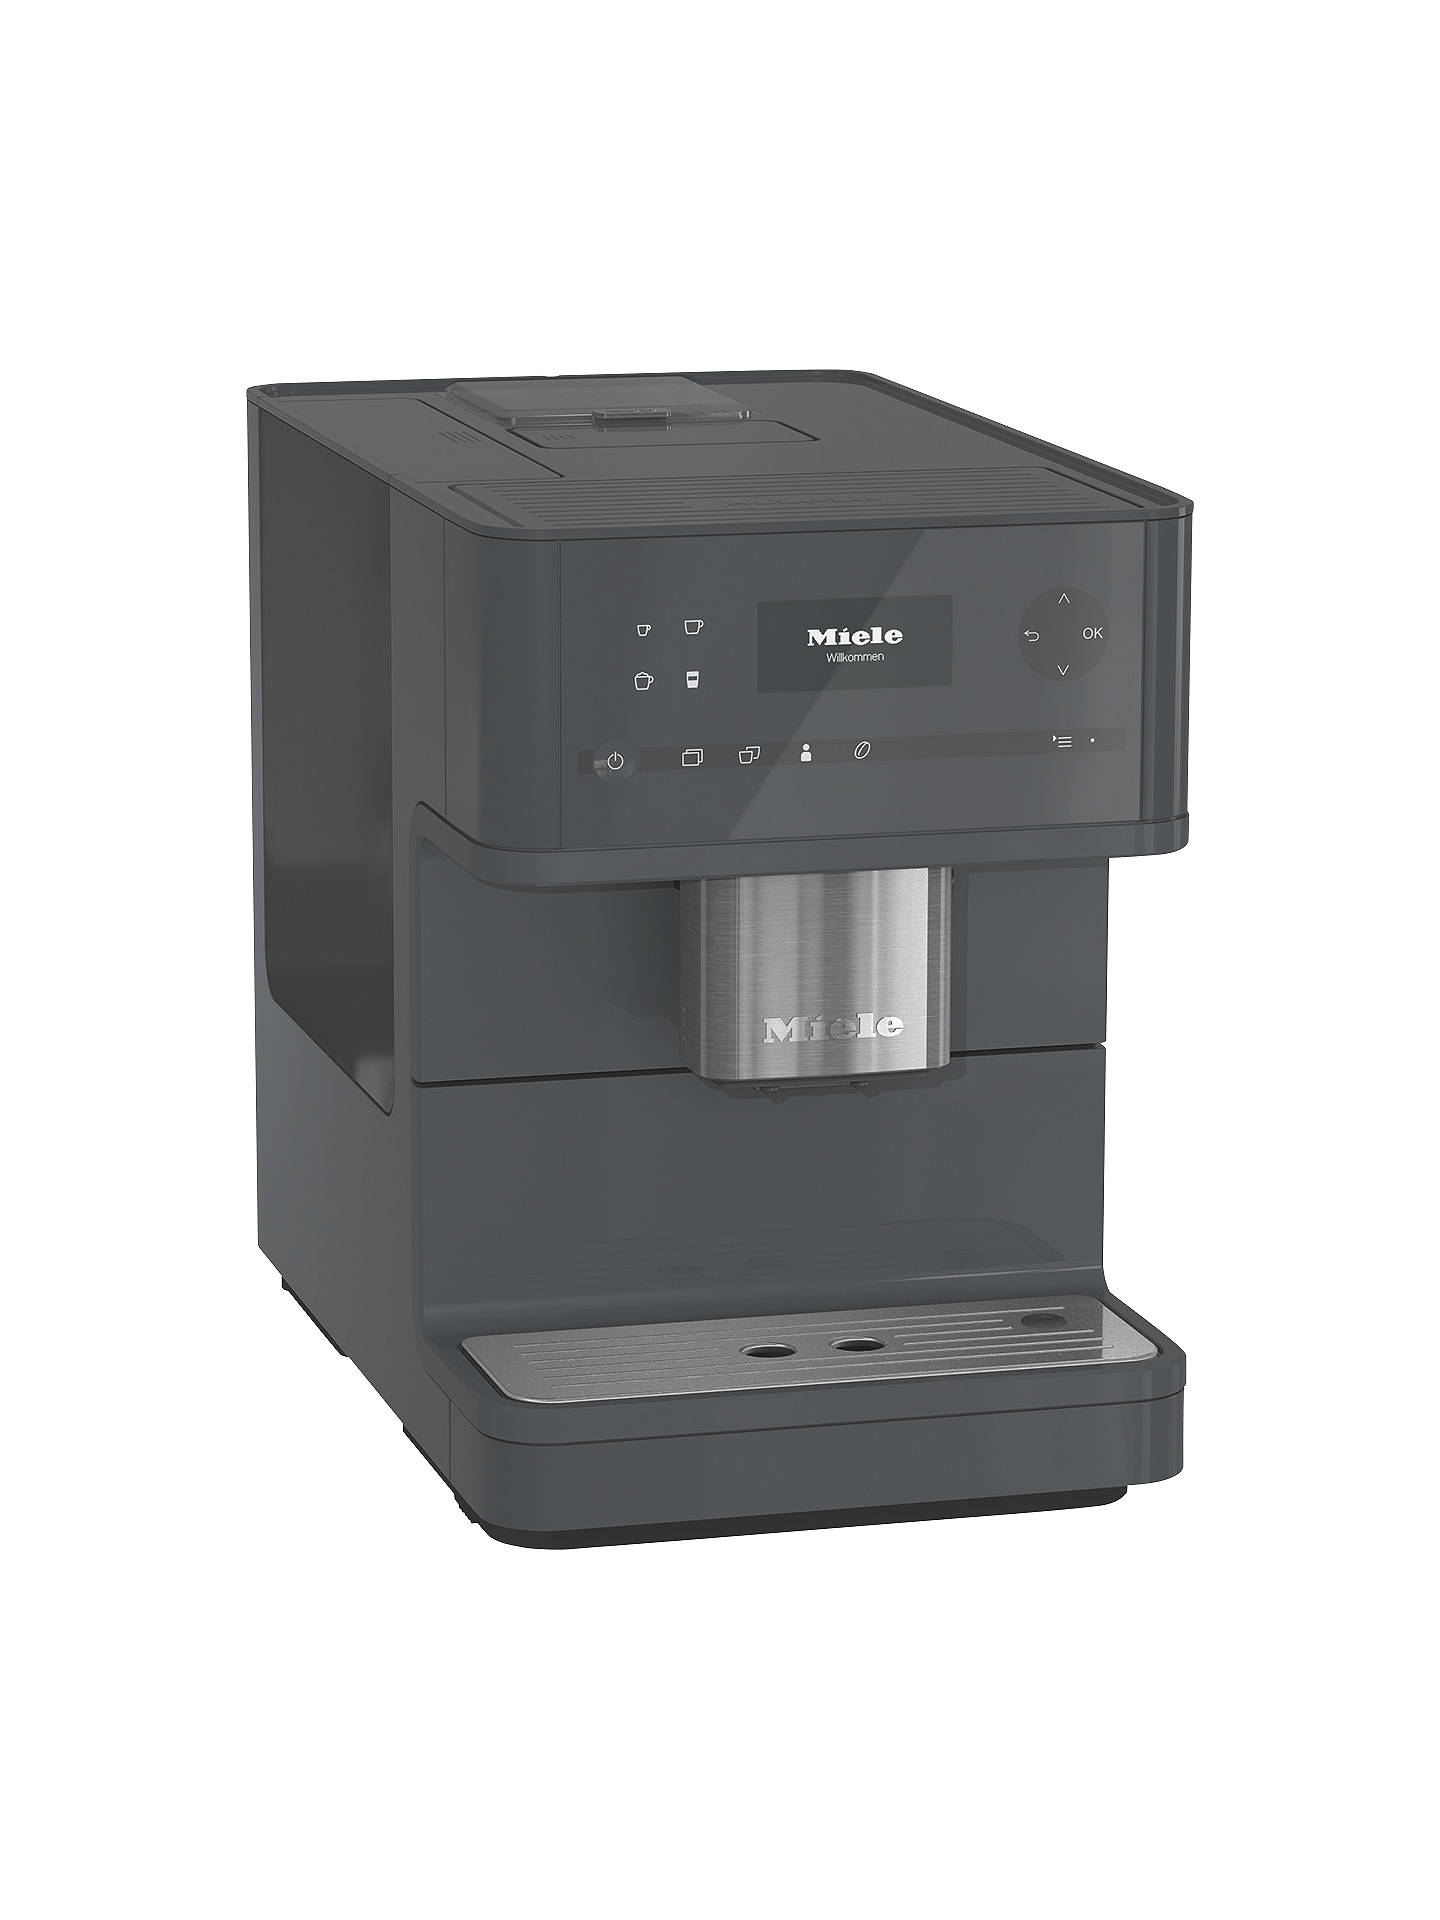 Miele Cm6150 Bean To Cup Coffee Machine Grey